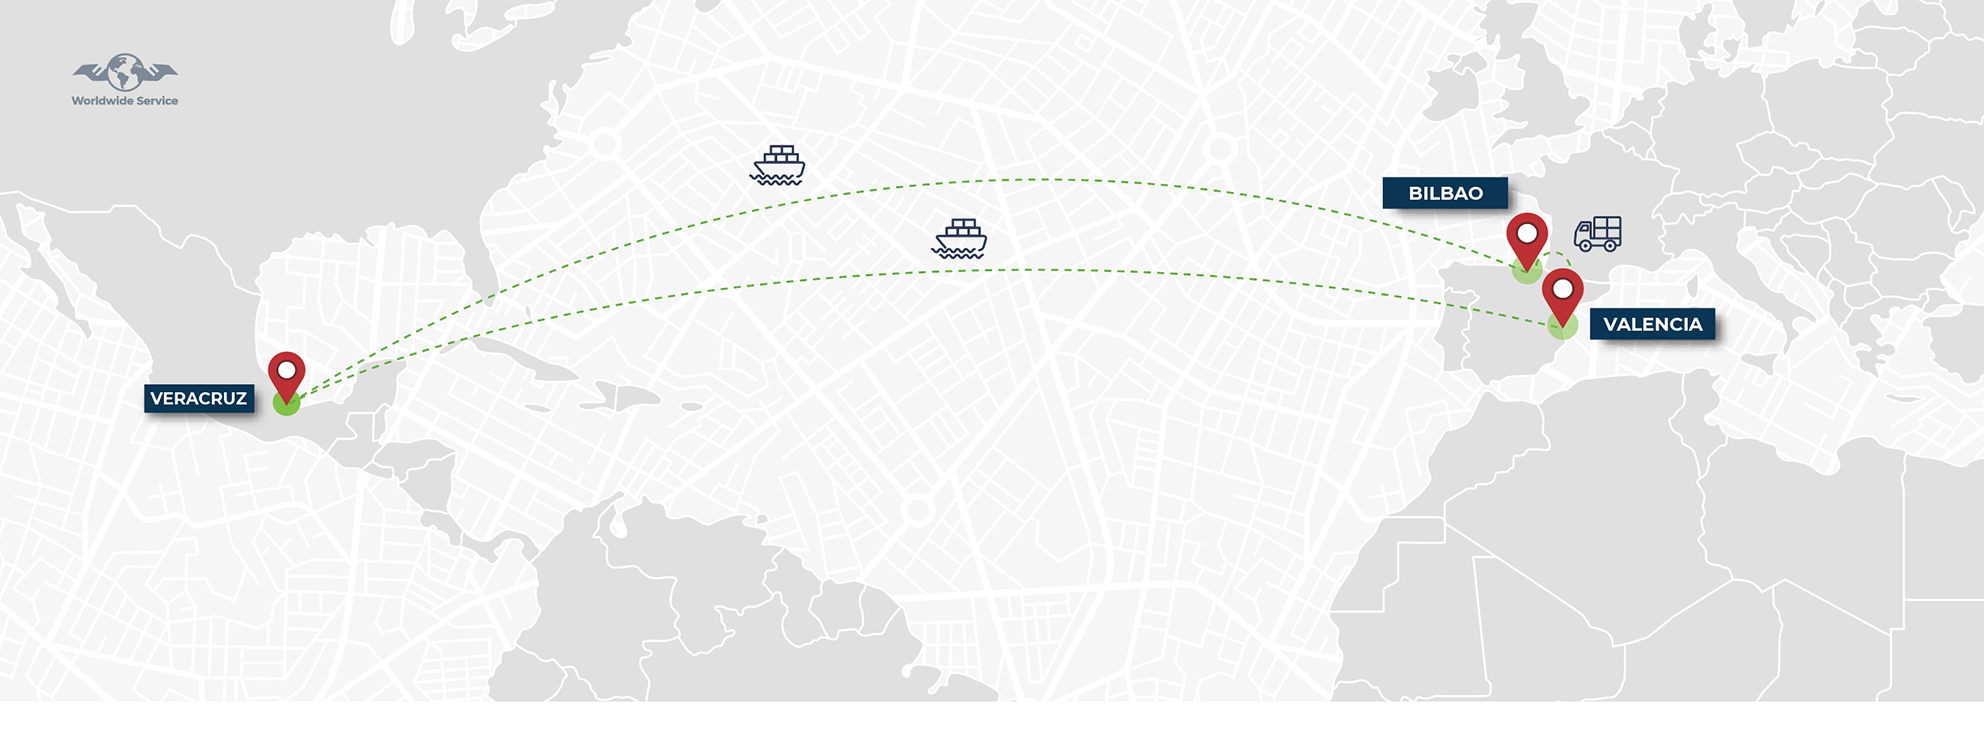 Map showing that part of the silo went from Valencia to Bilbao by Ground freight and the main part left from Valencia. Both arrived in Mexico at the same time!